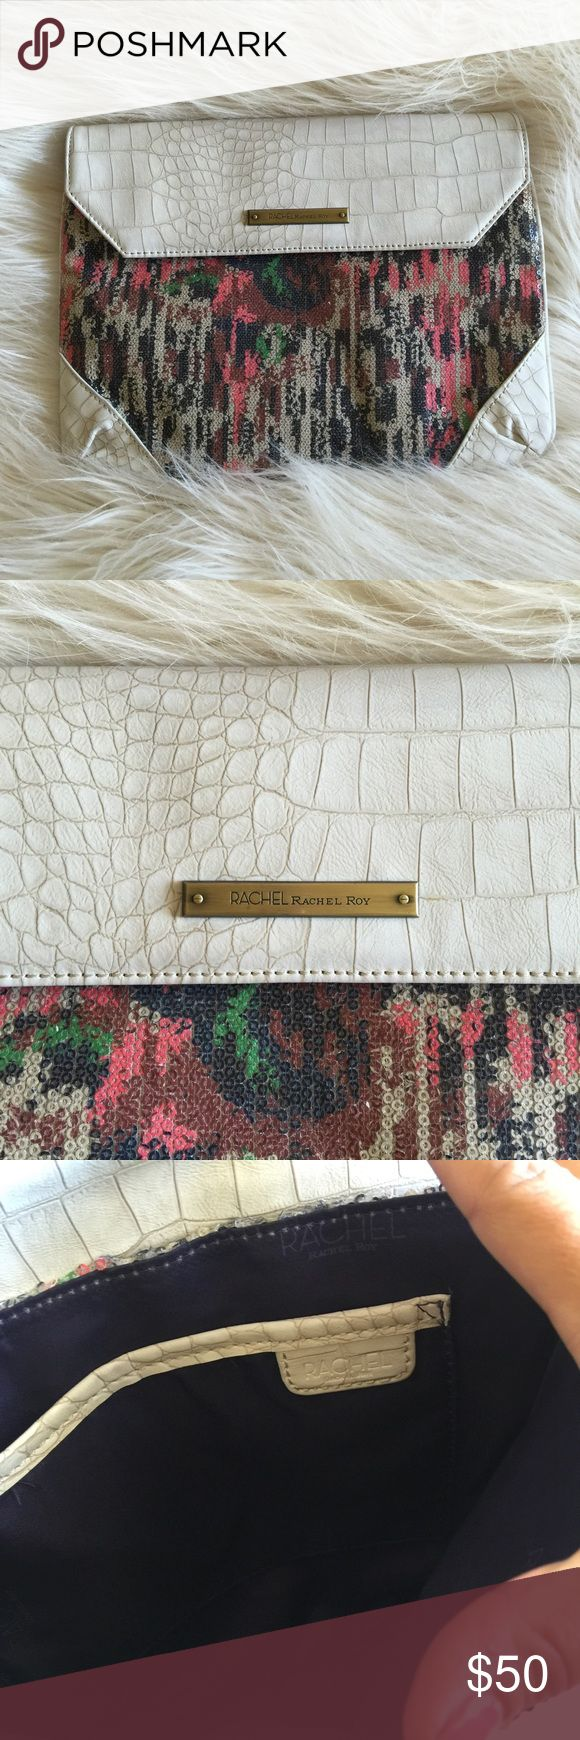 Rachael Roy Sequin & Snakeskin Multi Color Clutch Beautiful Rachel by Rachel Roy clutch bag. Multicolor sequins with alligator trim detailing. Vac features two nail looking pieces of hardware. Hardware is brass. Inside lines in deep purple with one pocket. RACHEL Rachel Roy Bags Clutches & Wristlets